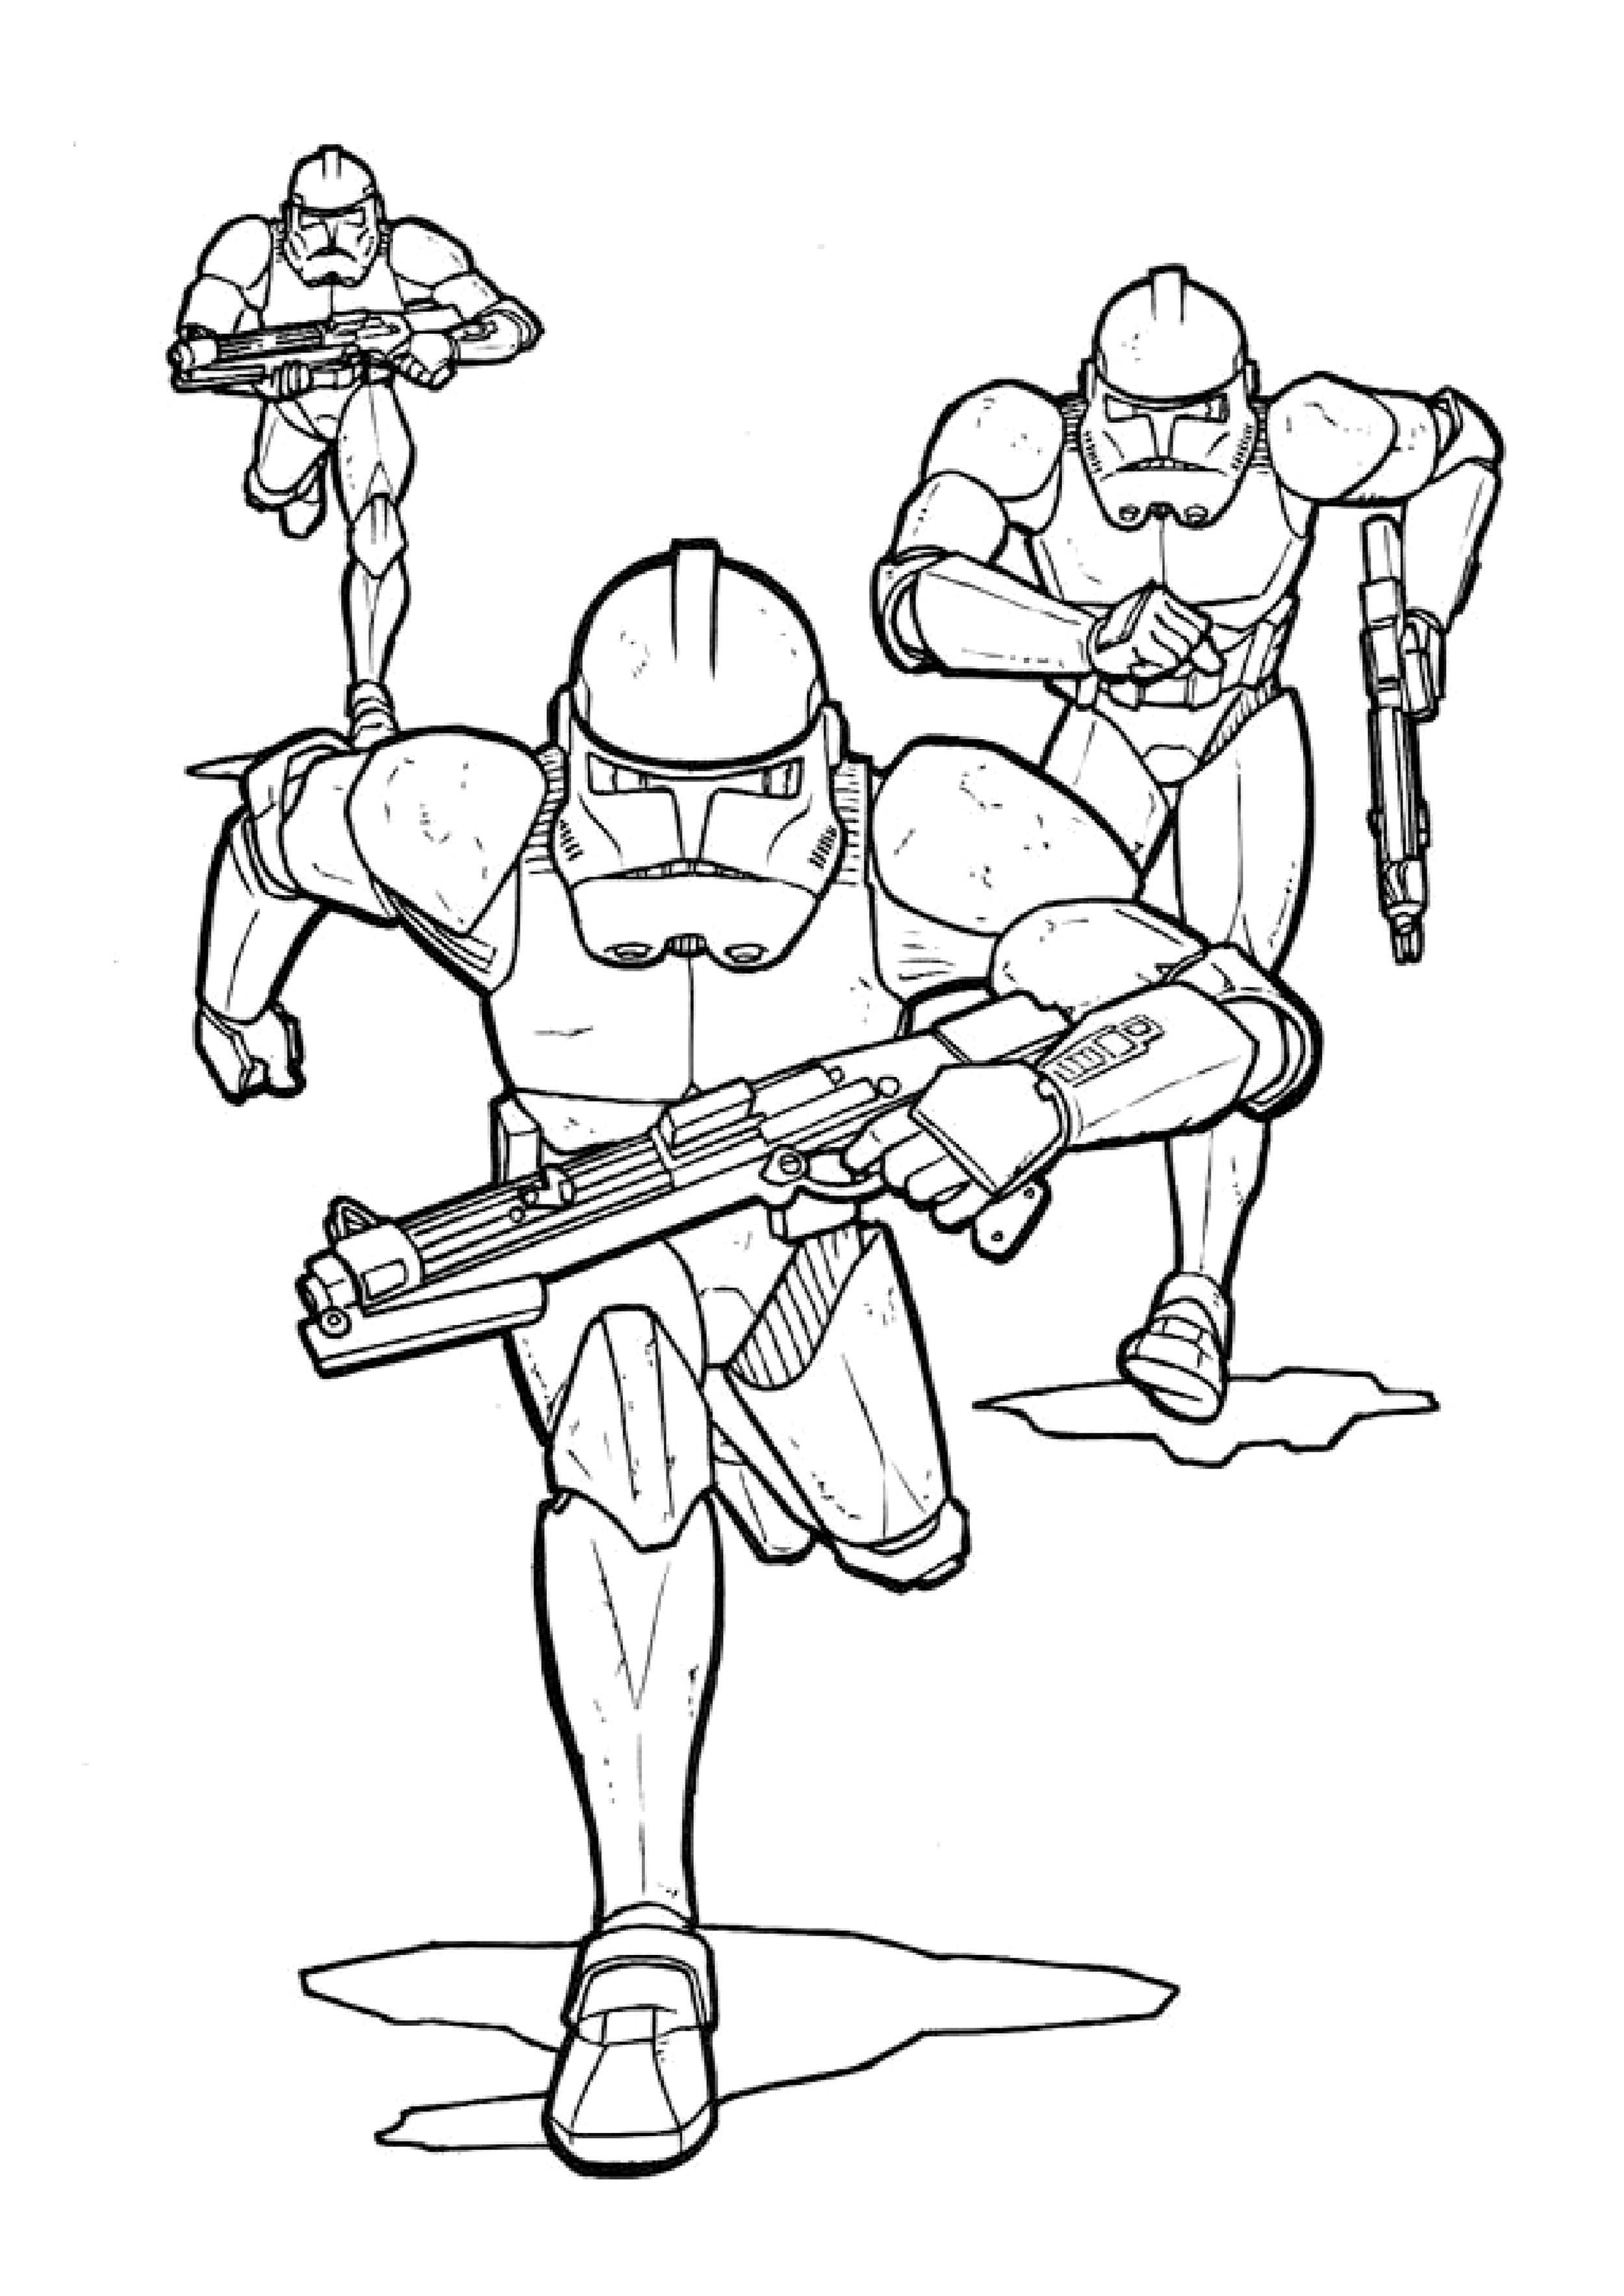 Lego Luke Skywalker Coloring Pages at GetDrawings.com | Free for ...